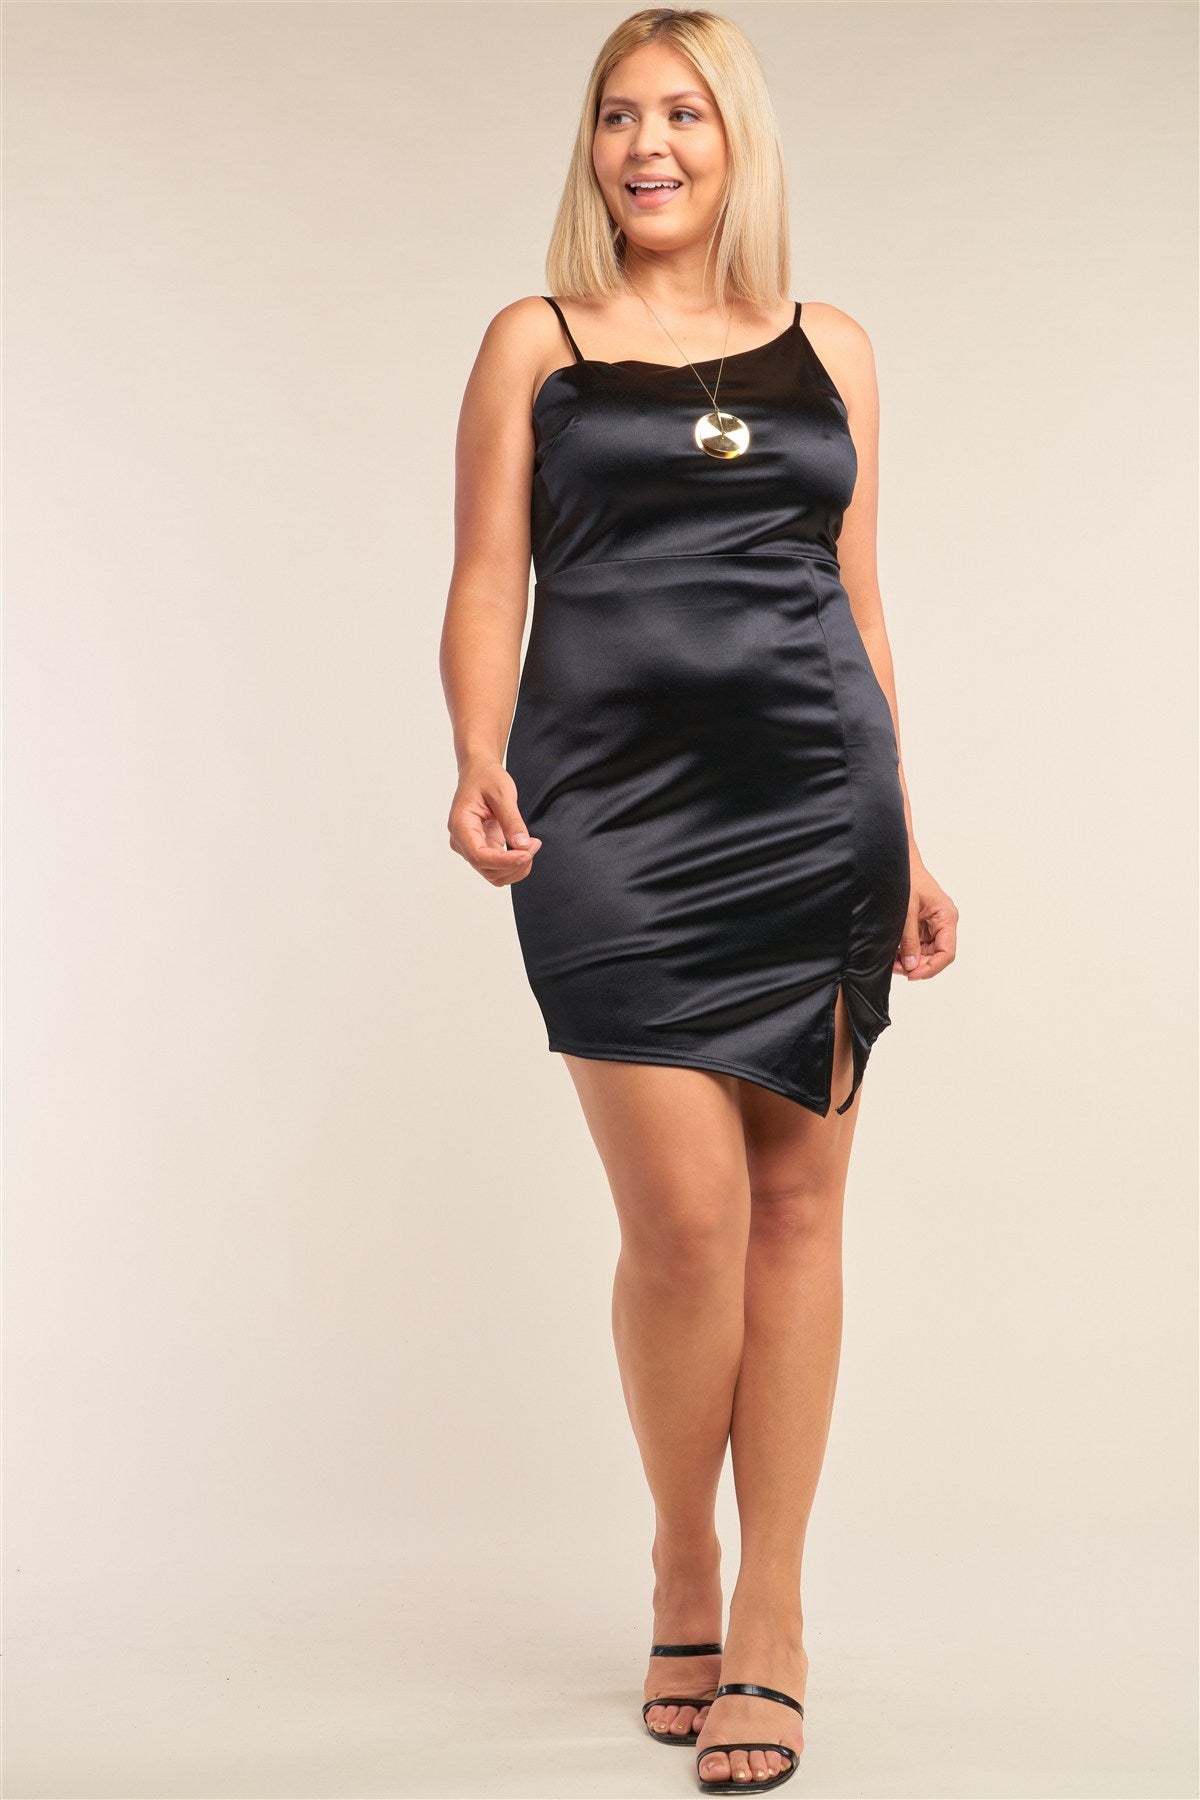 Plus Size Satin Cocktail Mini Dress